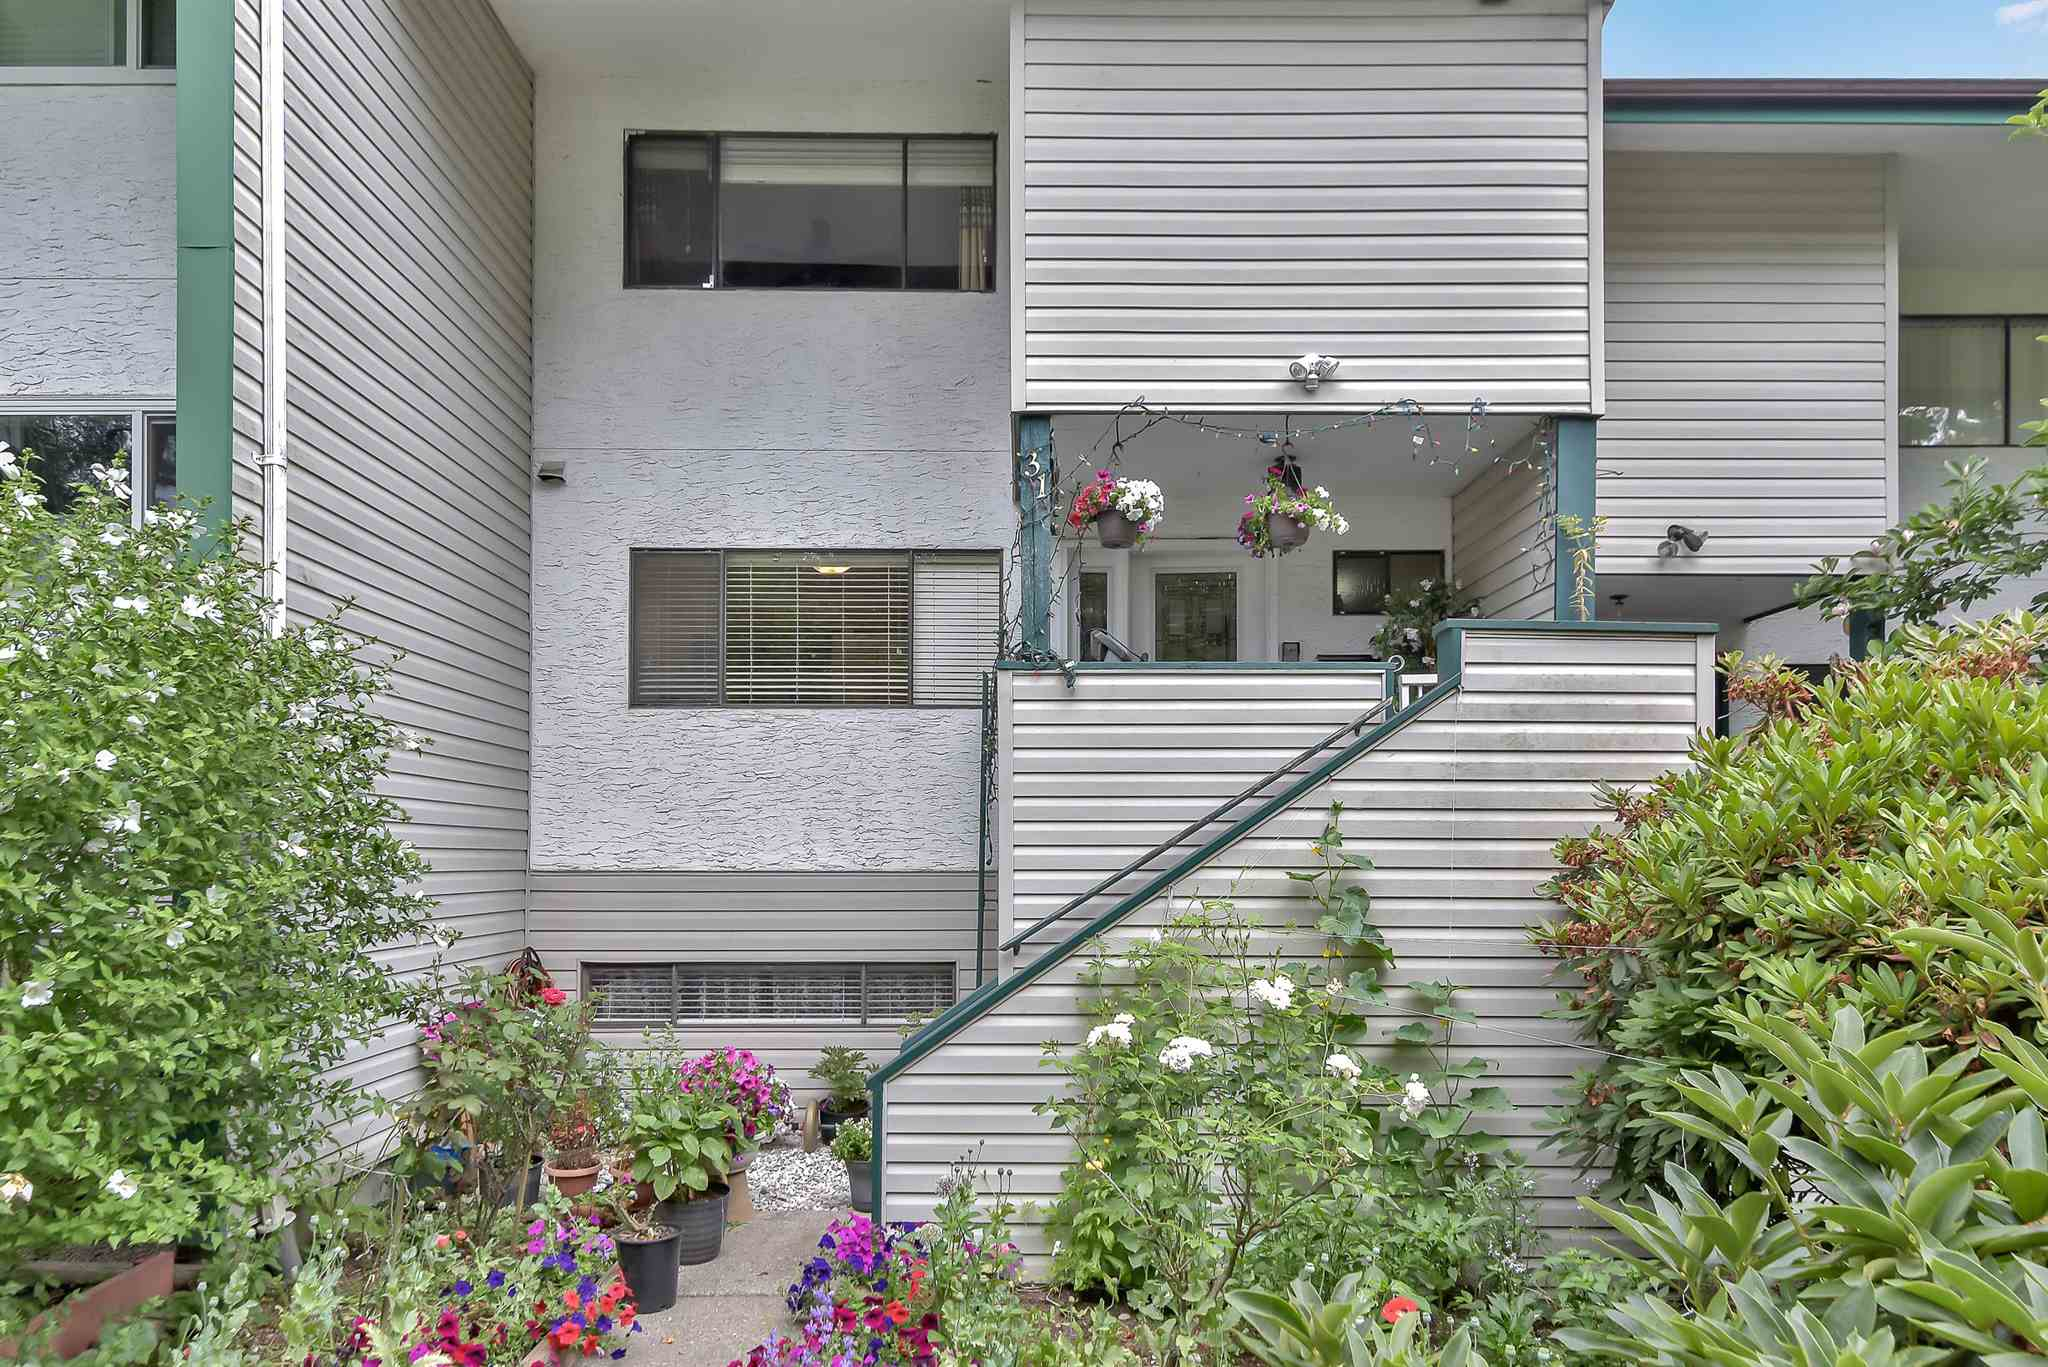 31 12045 93A AVENUE - Queen Mary Park Surrey Townhouse for sale, 4 Bedrooms (R2603608) - #2